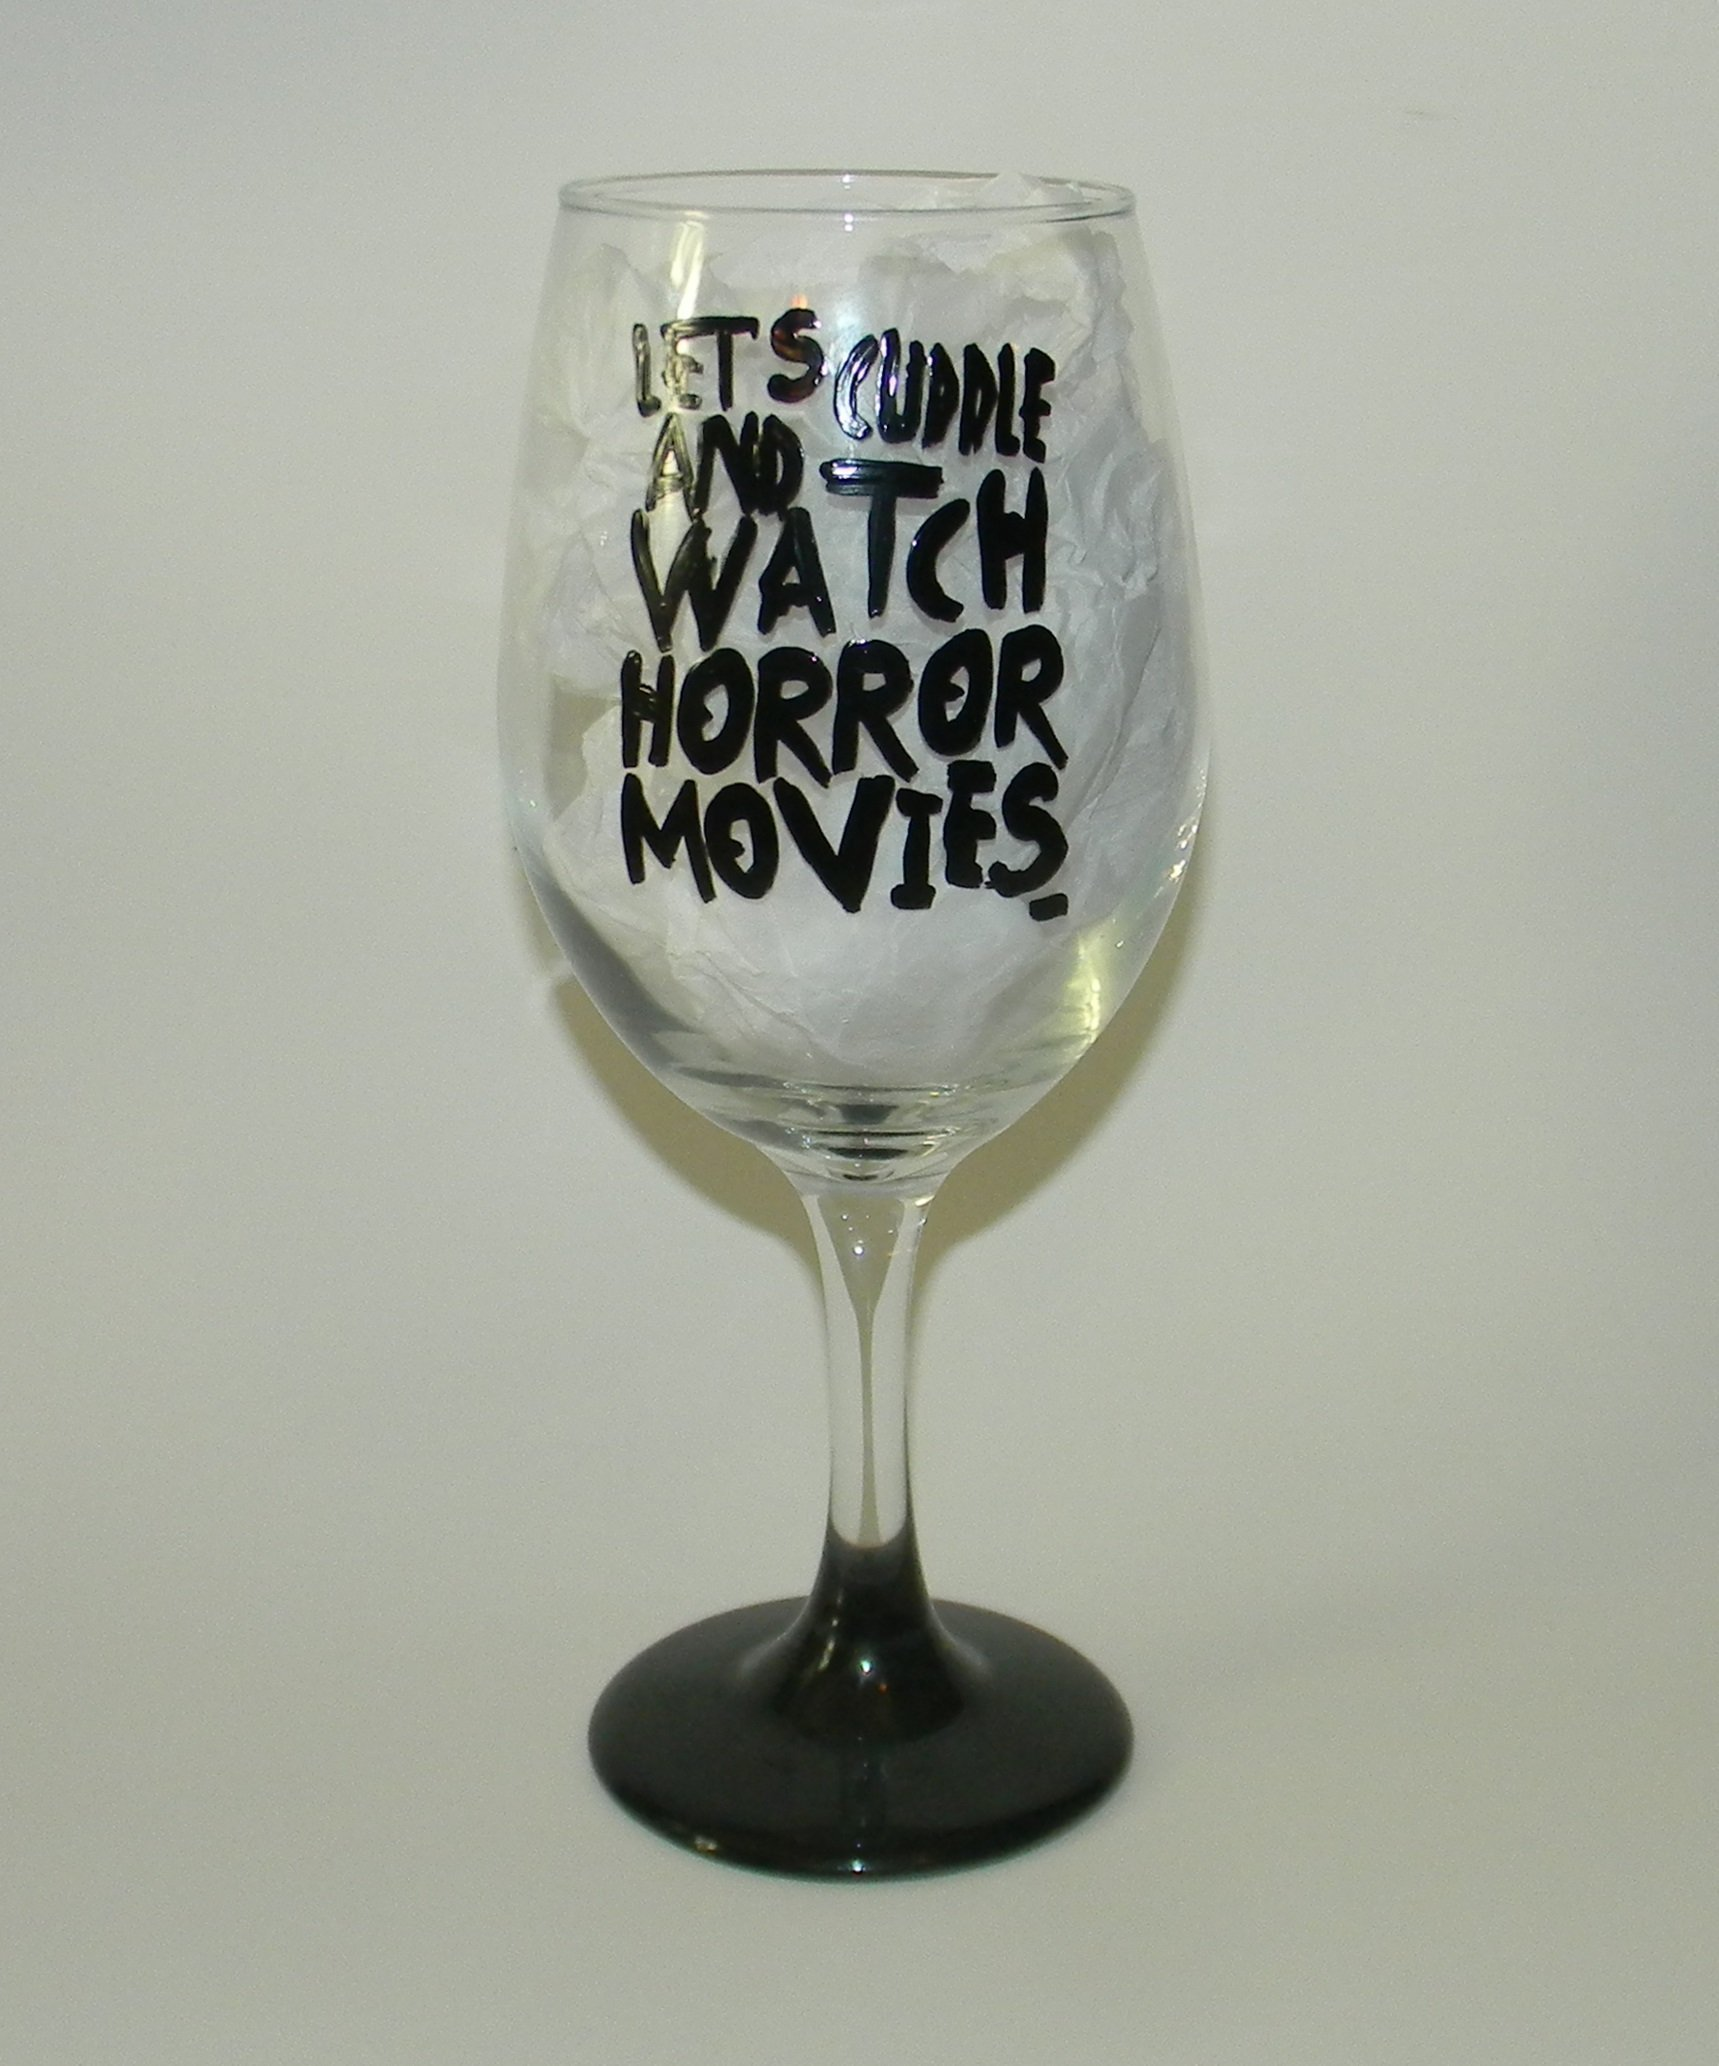 Lets cuddle and watch horror movies wine glass